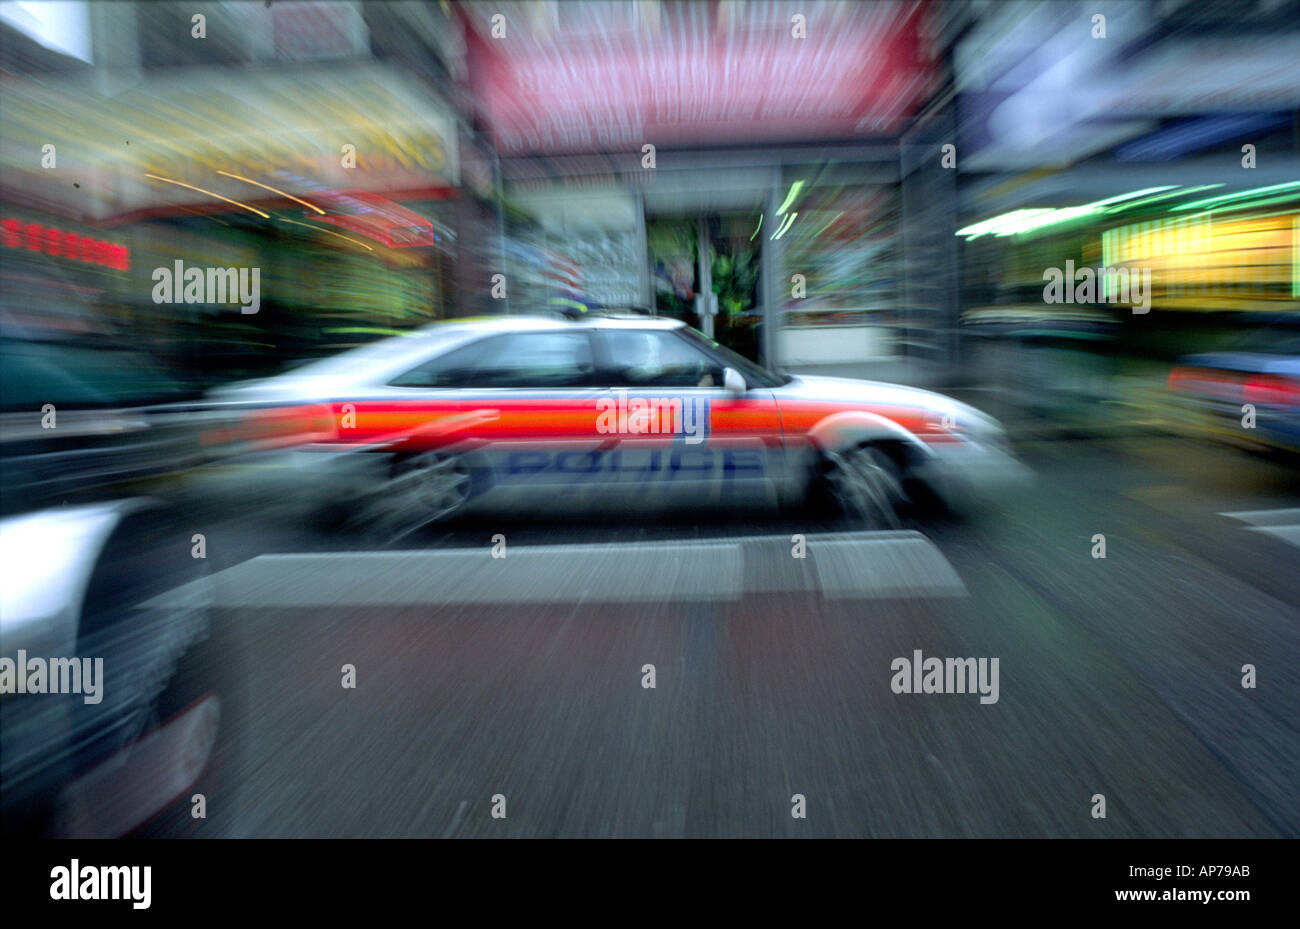 Rover police car zoomed stock image